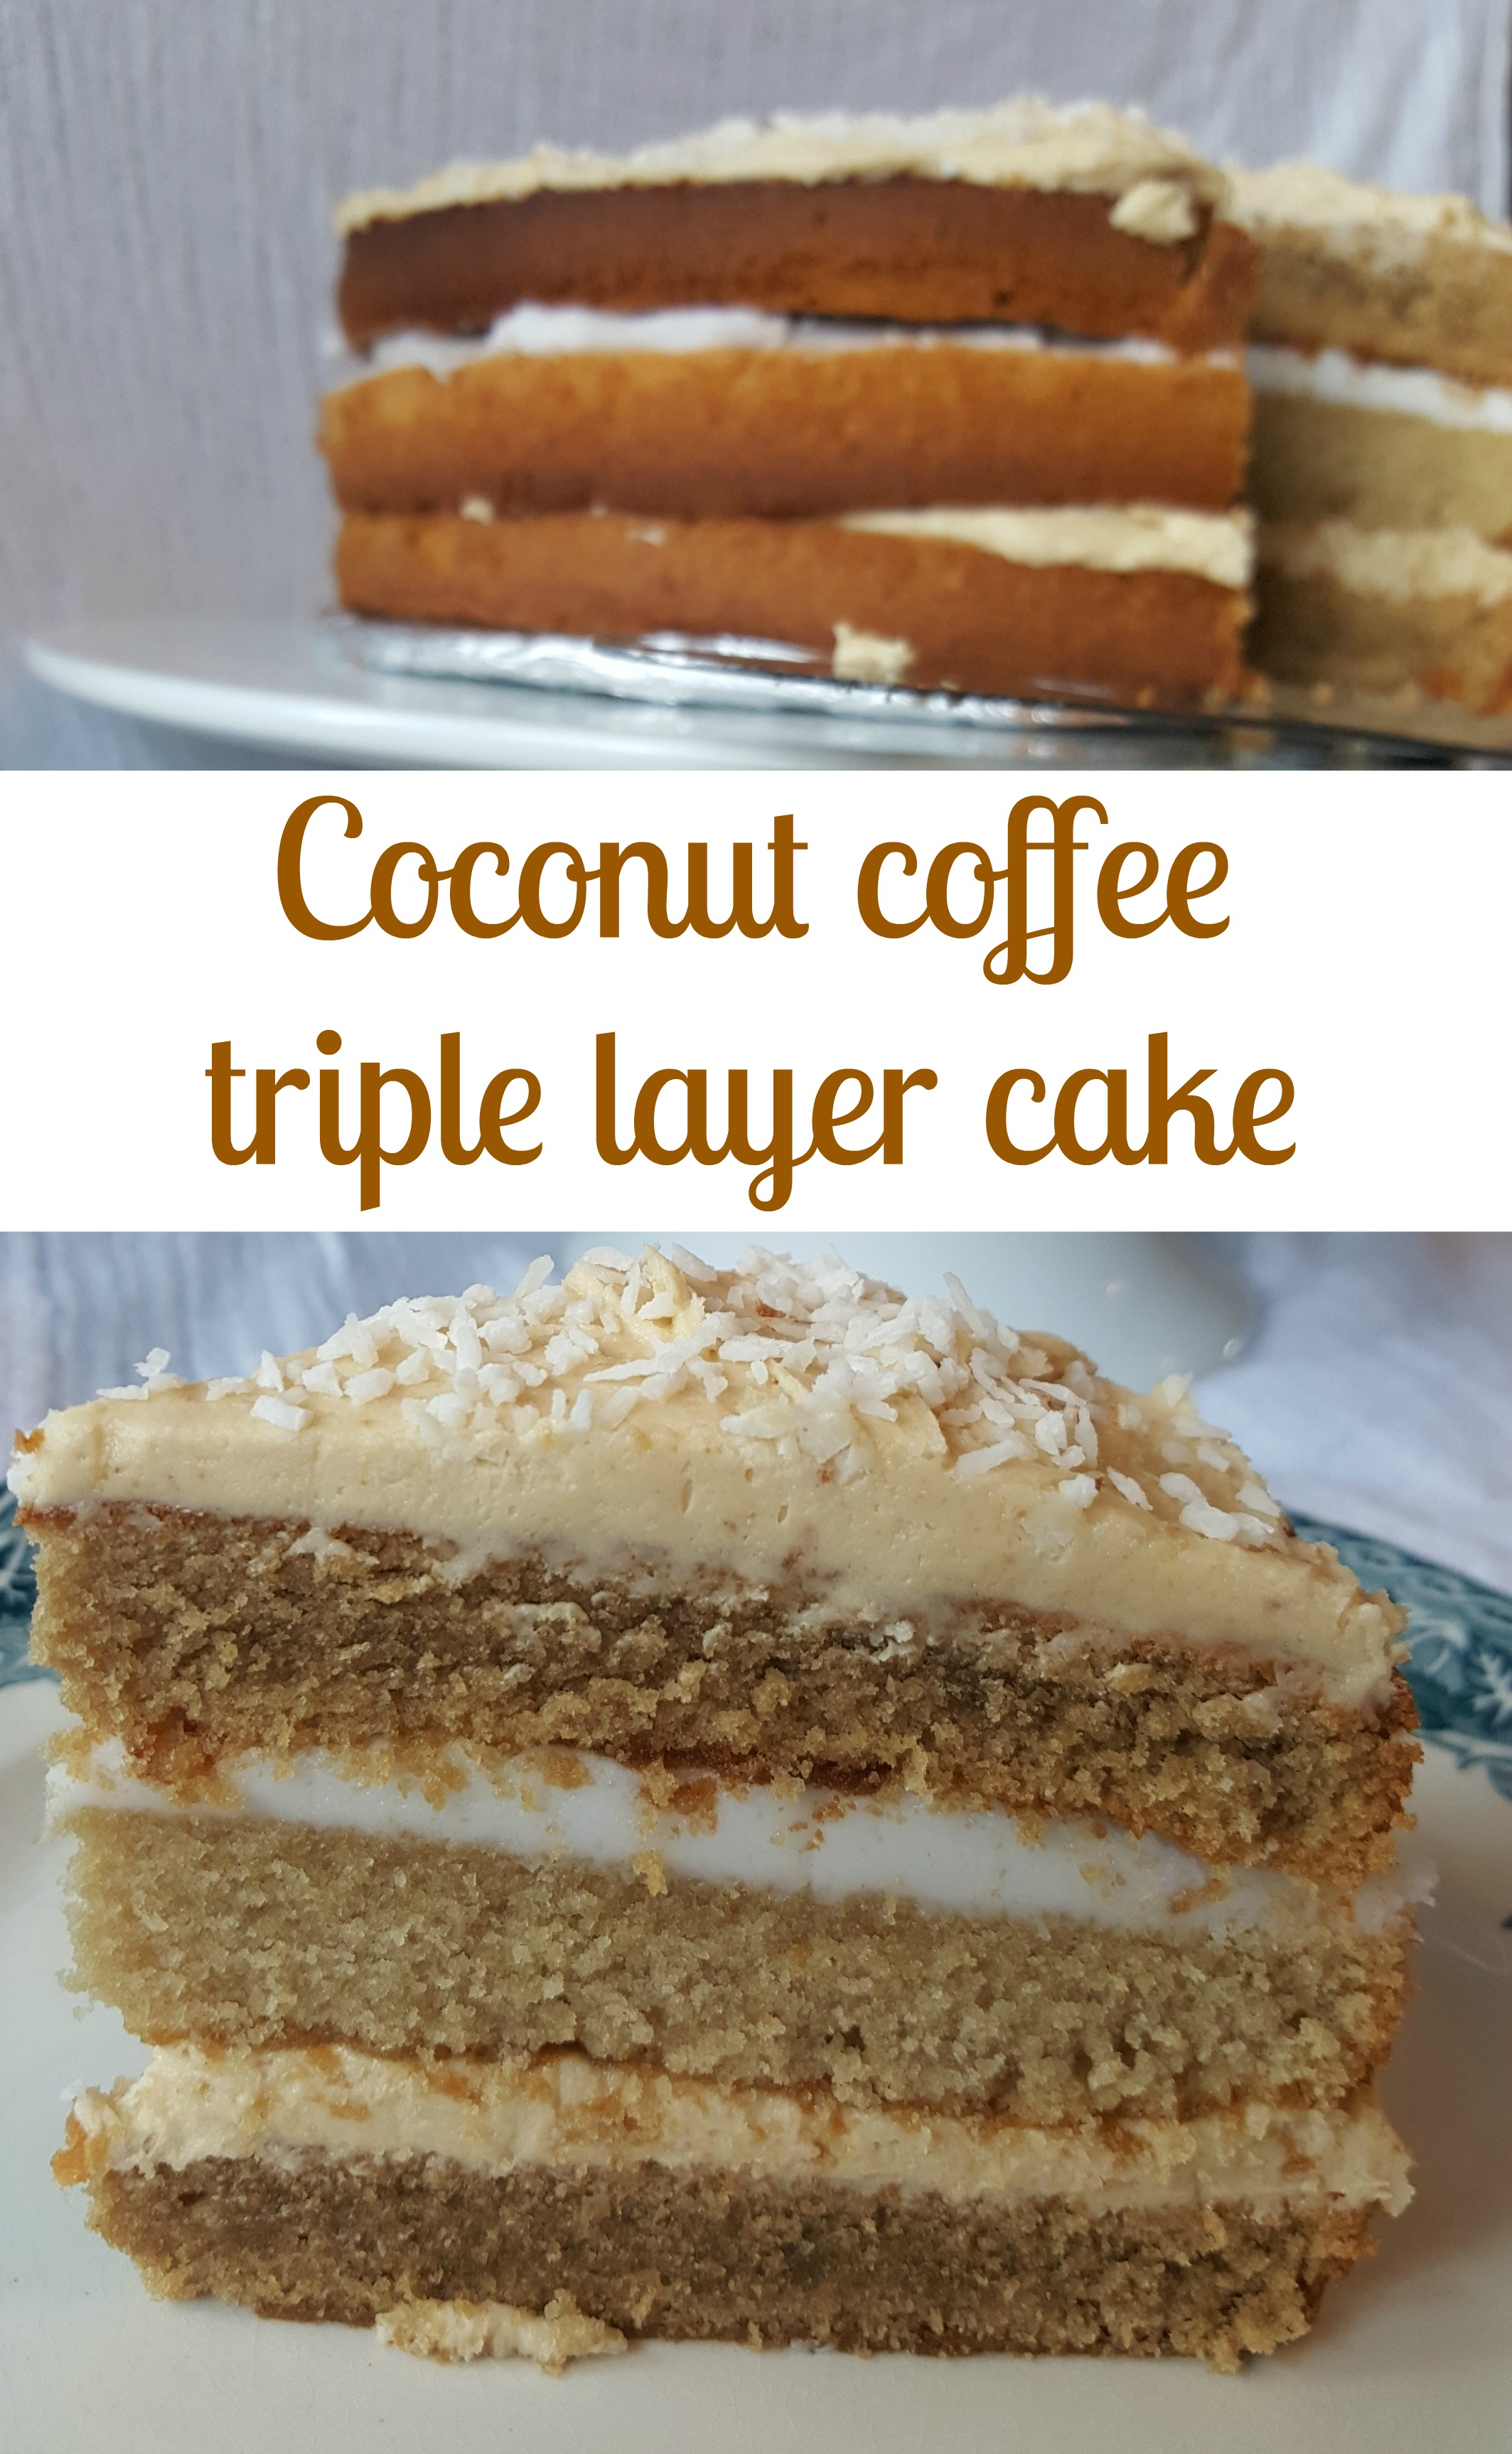 Coconut And Espresso Cream Layer Cake Recipe — Dishmaps